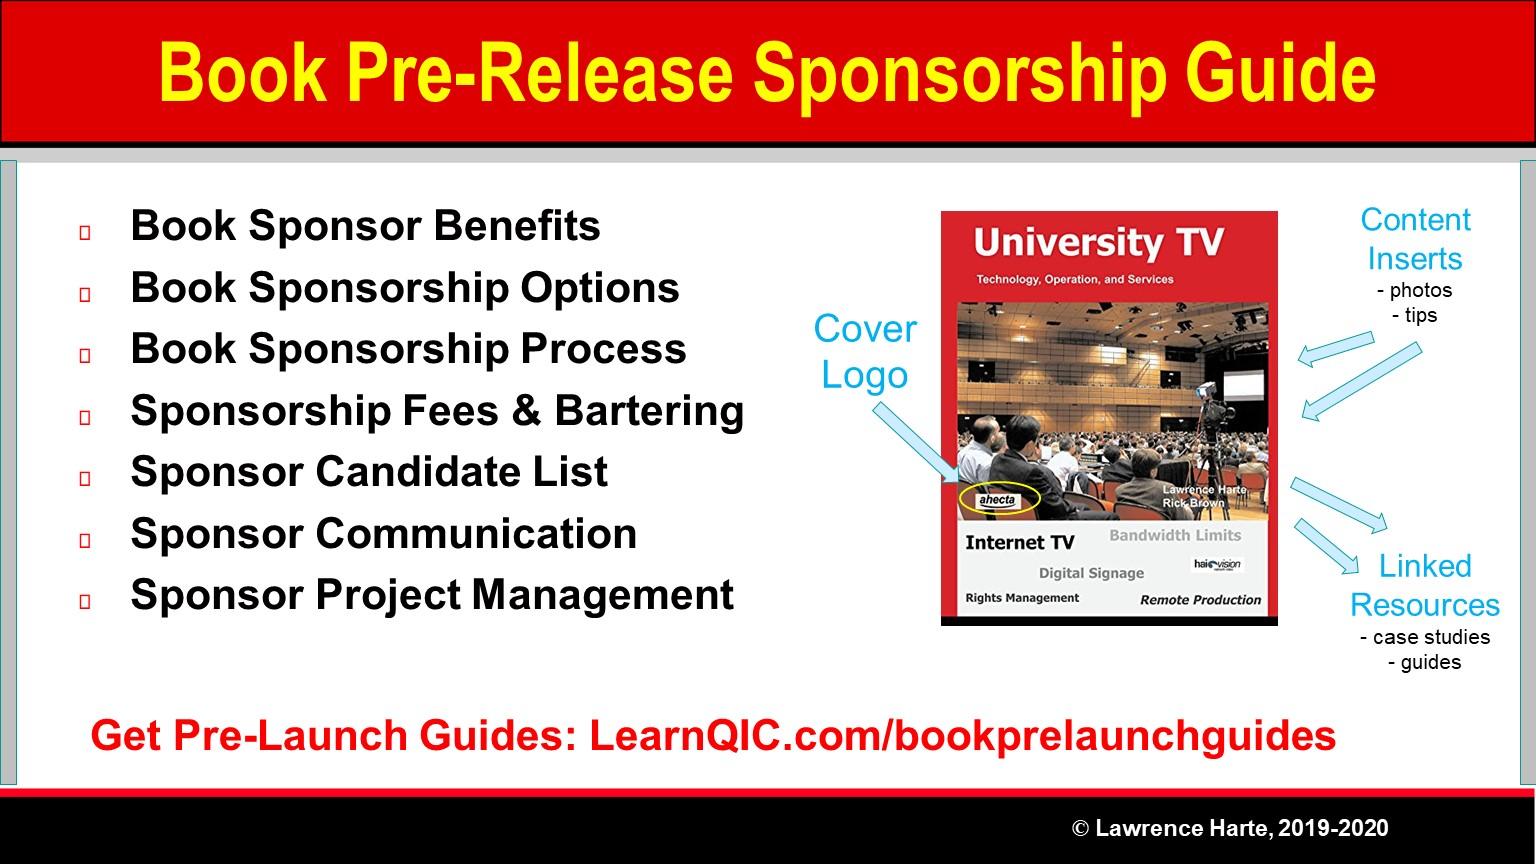 Book Pre-Launch Sponsorships Guide